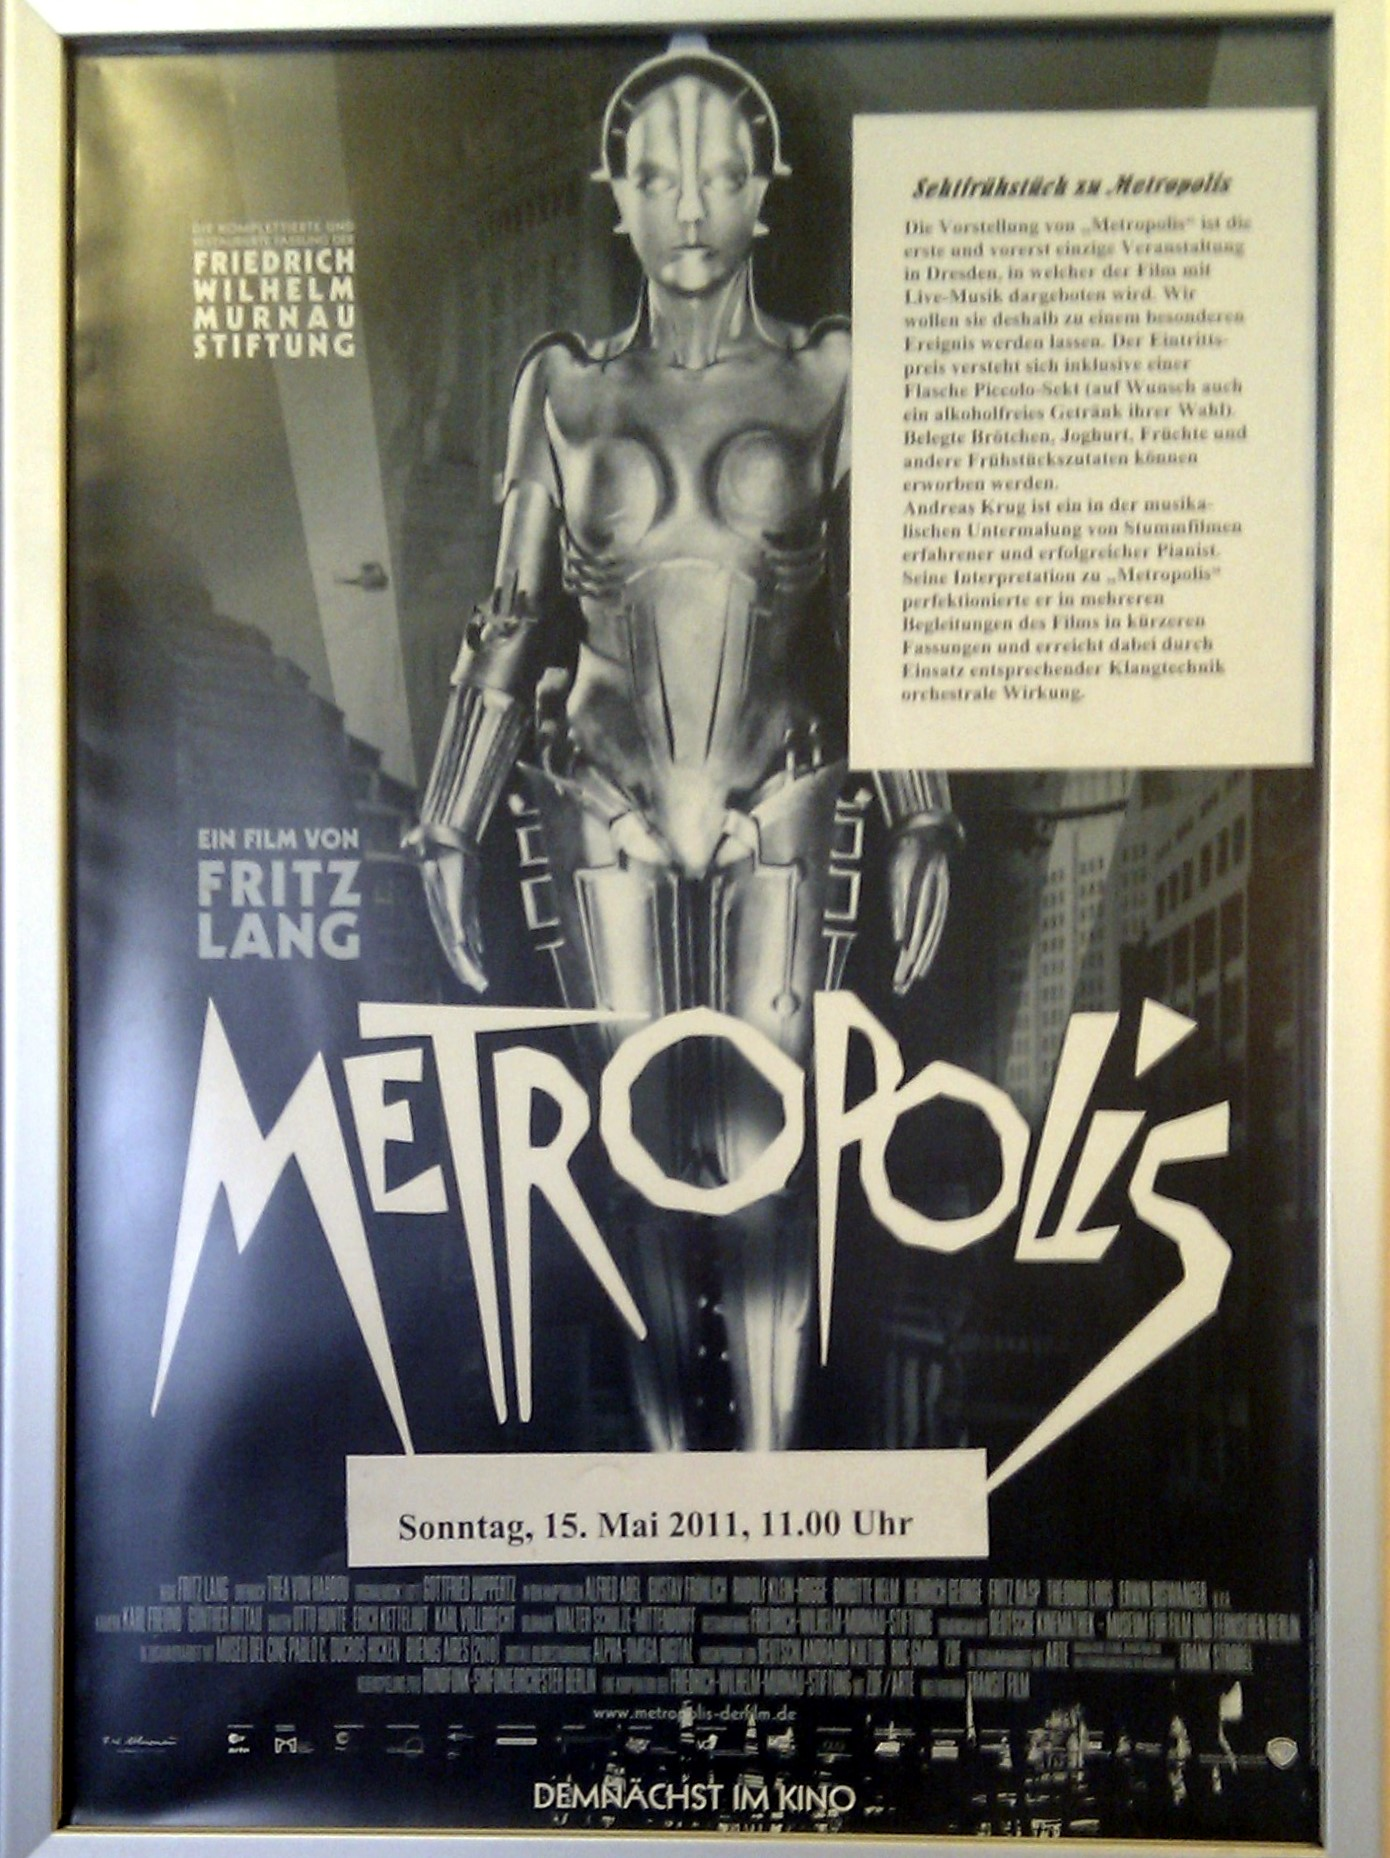 metropolis essay Essays about metropolis sex and violence, religion and technology: themes in fritz lang's metropolis visual distinctions of class and wealth in three german films.